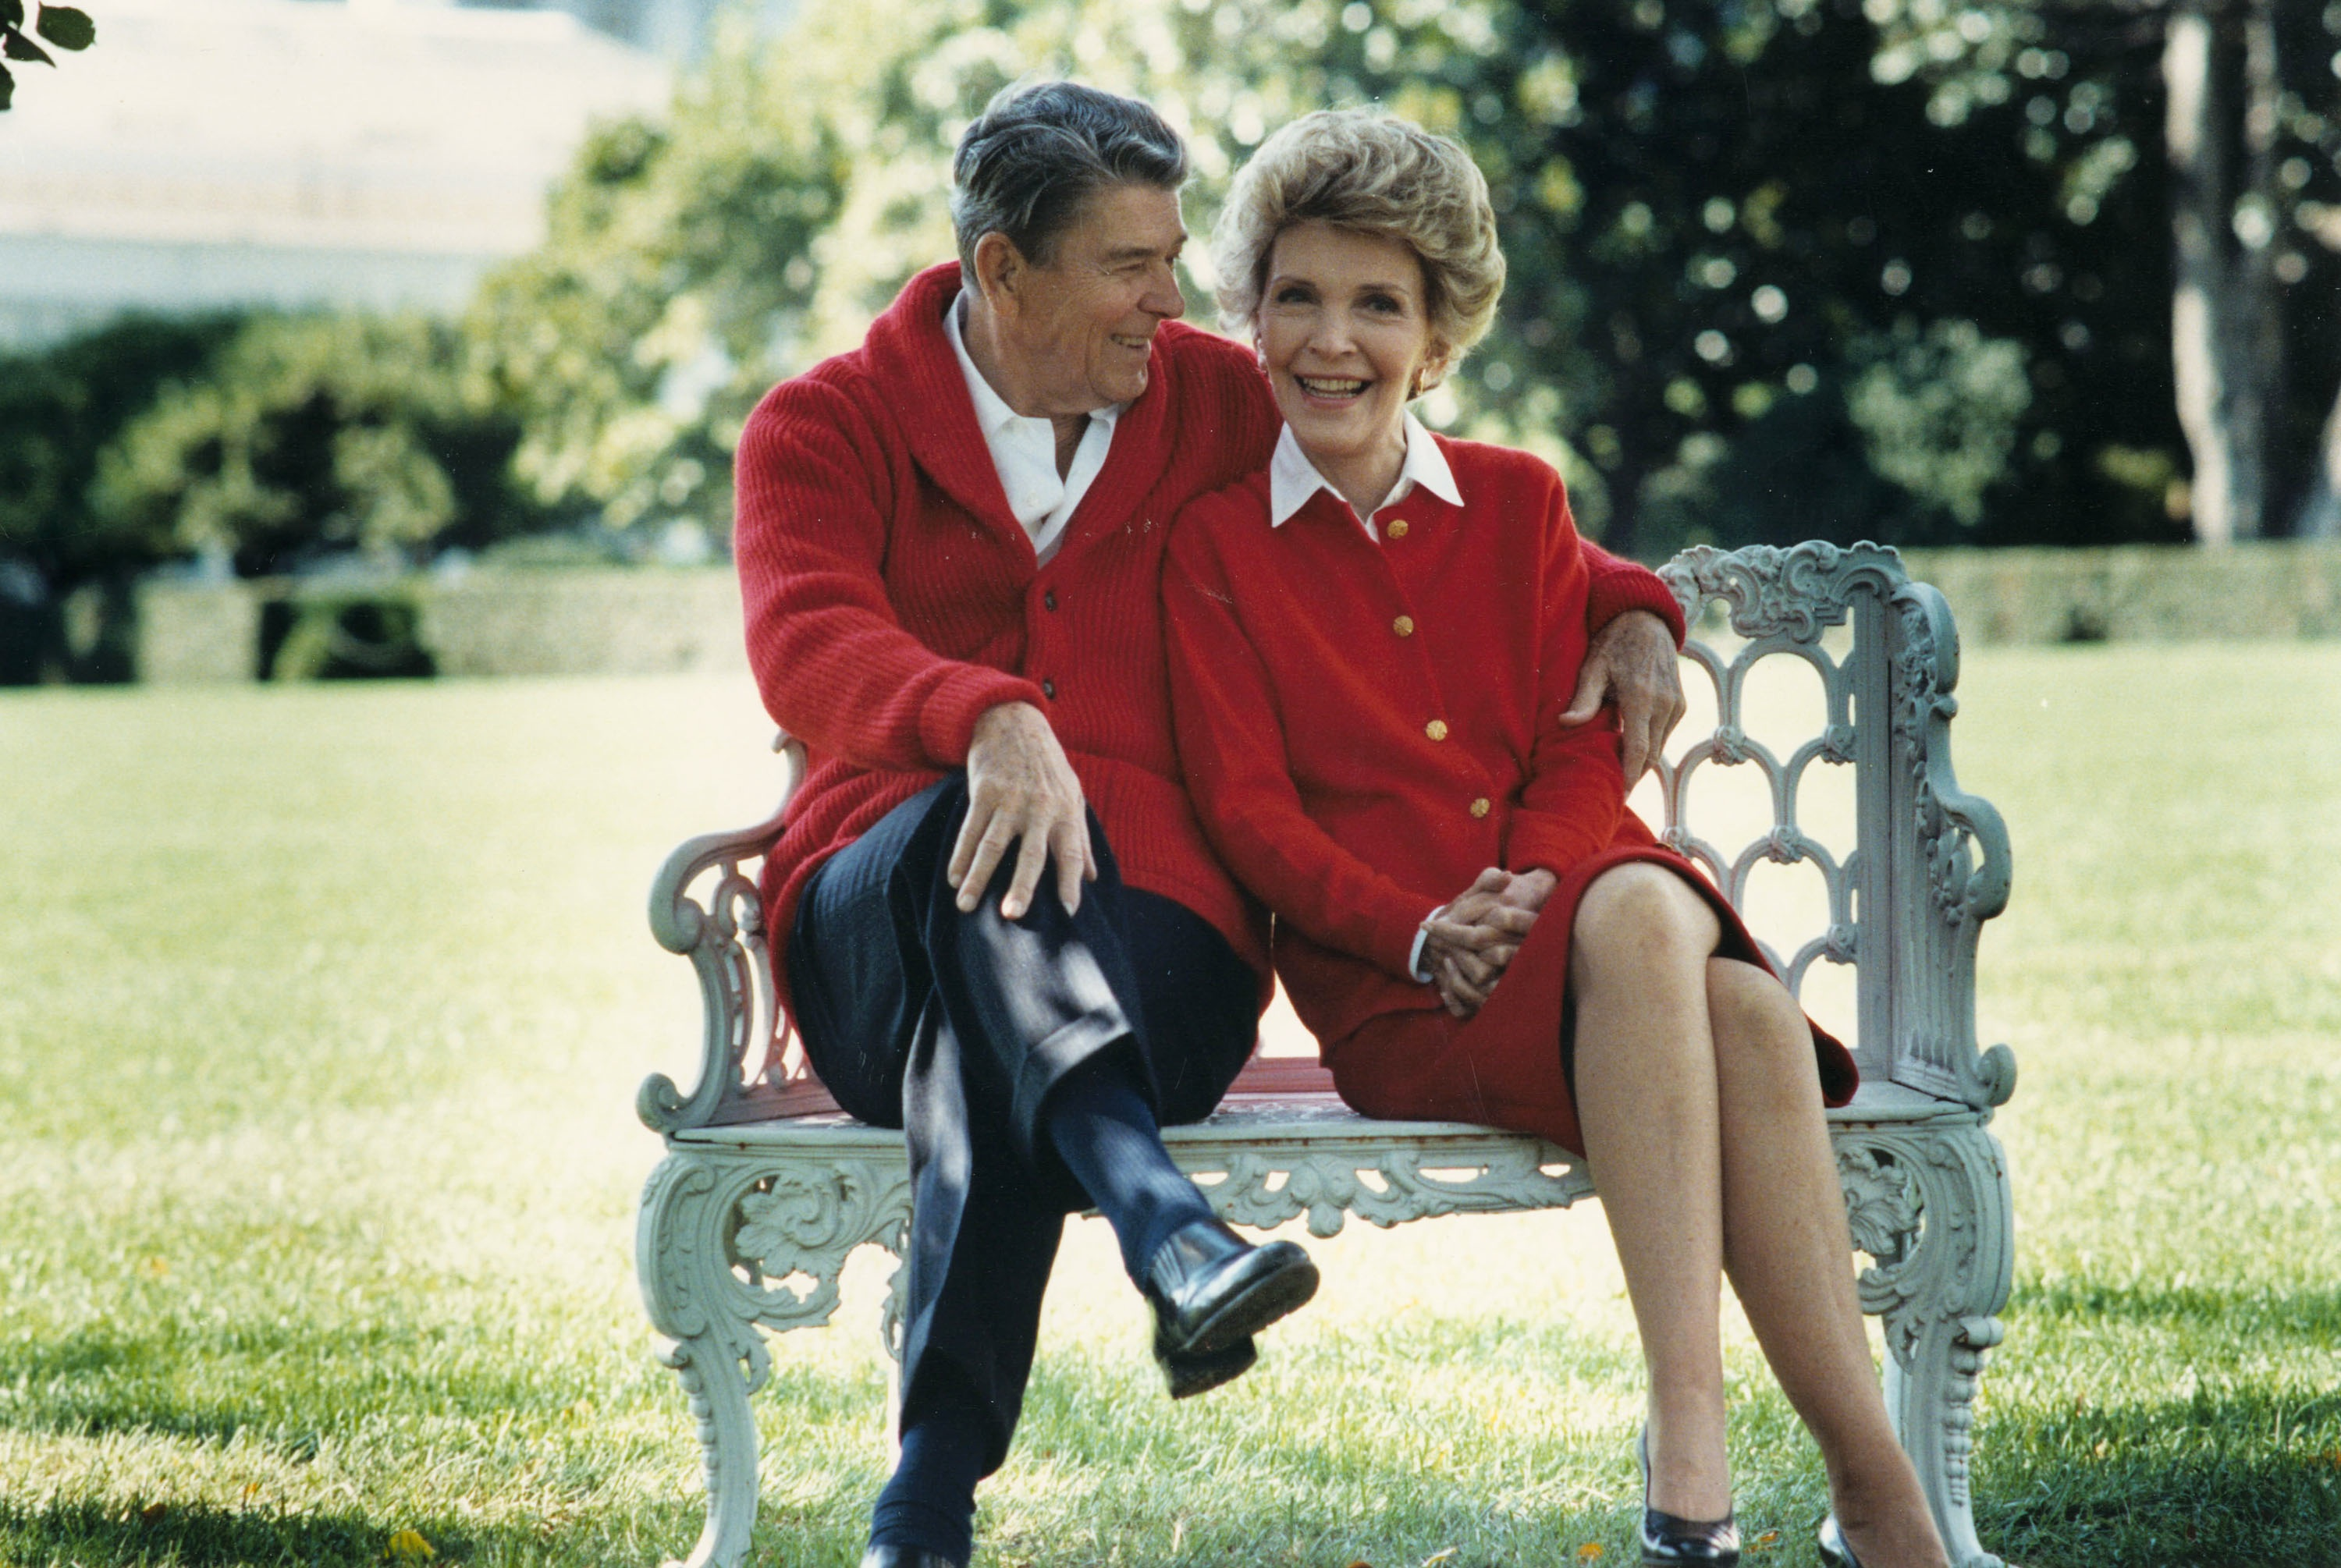 Post White House                                                              After the Reagans left Washington, they returned to California, where they divided their time between their ranch in Santa Barbara and their residence in Bel Air.  Nancy continued to dedicate herself to educating young people about the dangers of drug abuse, and devoted more and more time caring for her husband, who revealed in 1994 that he had been diagnosed with Alzheimer's Disease.